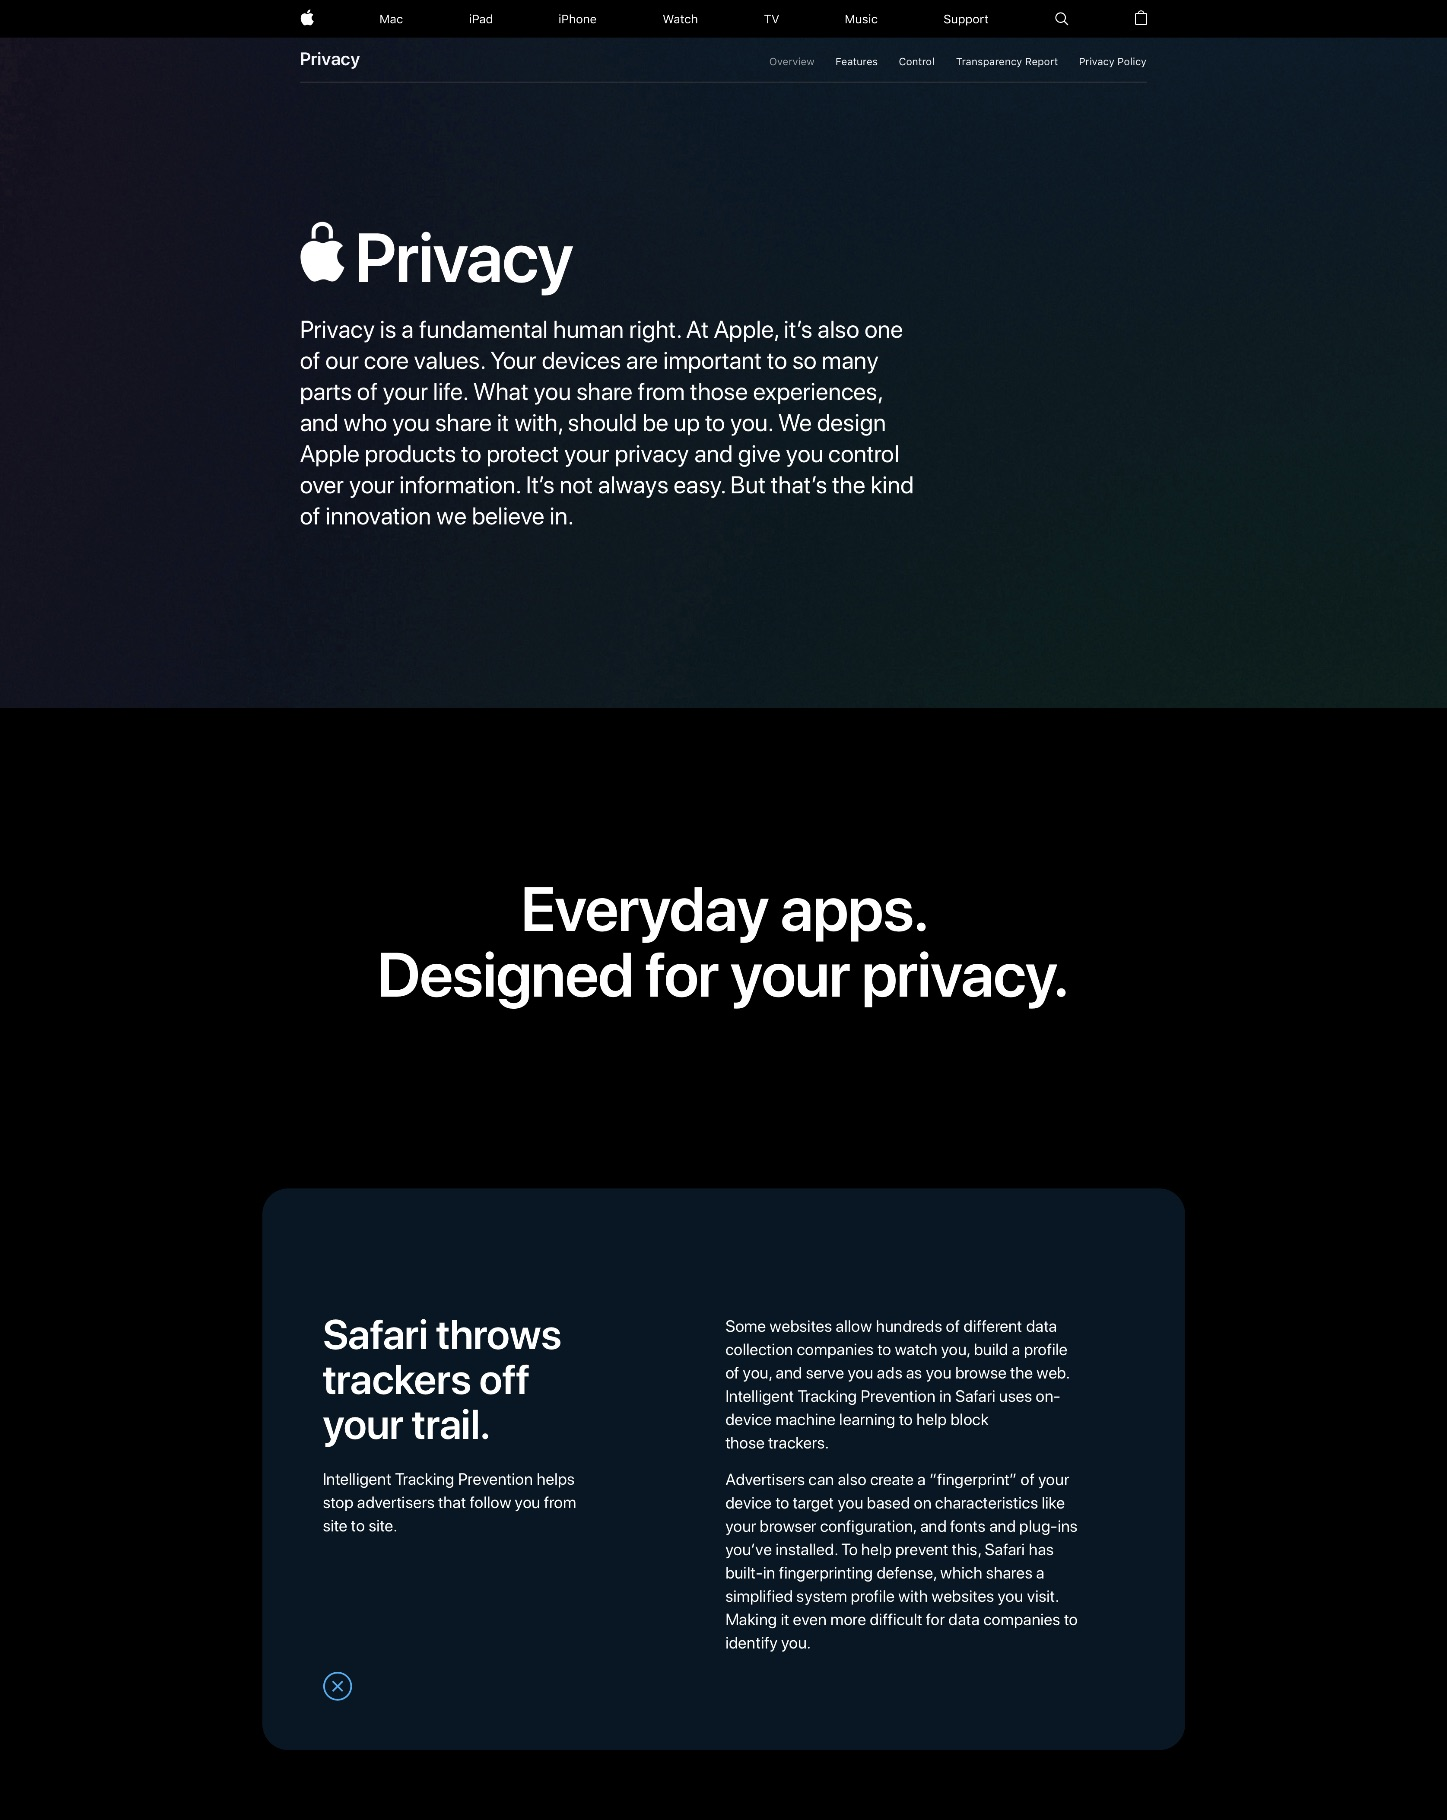 Apple refreshes its privacy site with new technical whitepapers